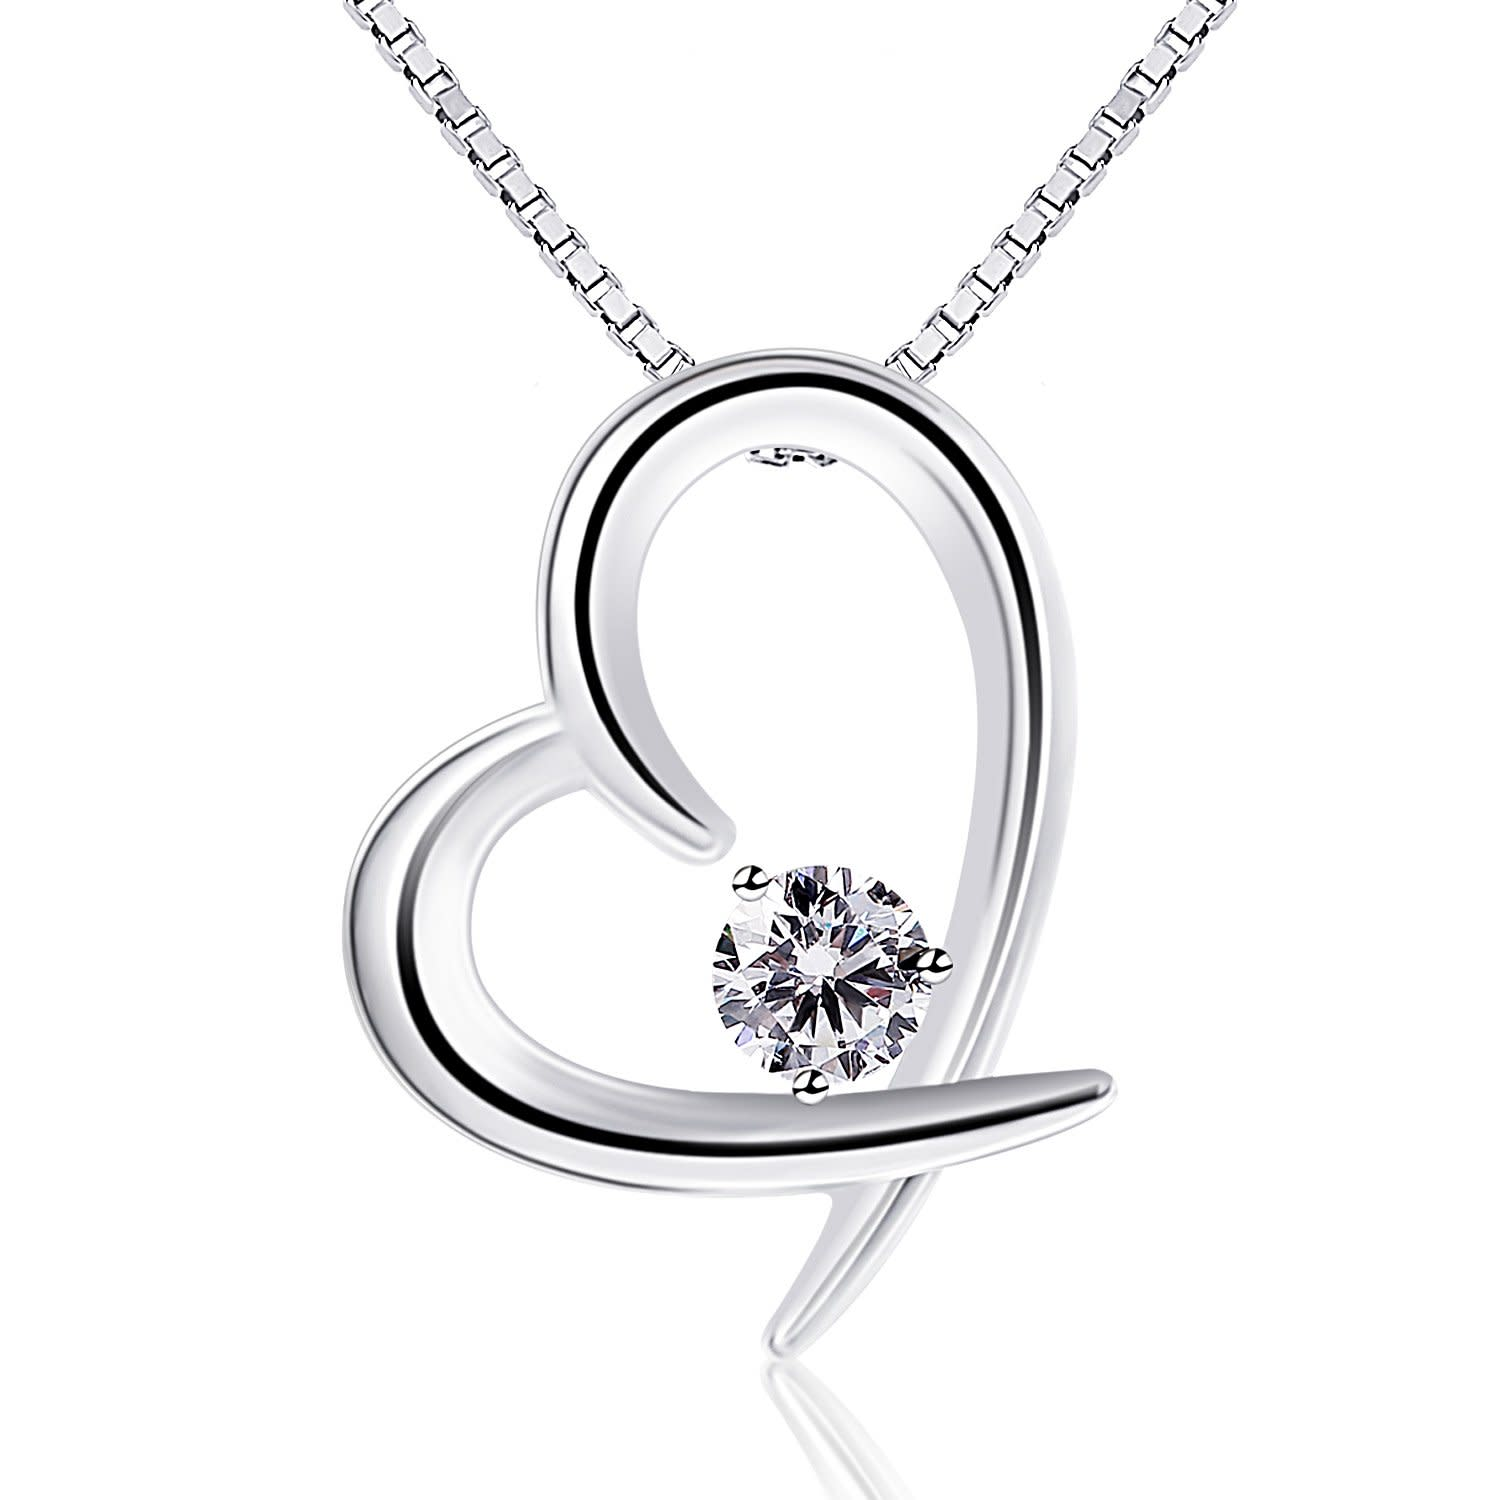 dp couples co sterling zirconias love accented jewellery piece uk cubic gift boxed necklace amazon set pendant silver jewelry heart two you